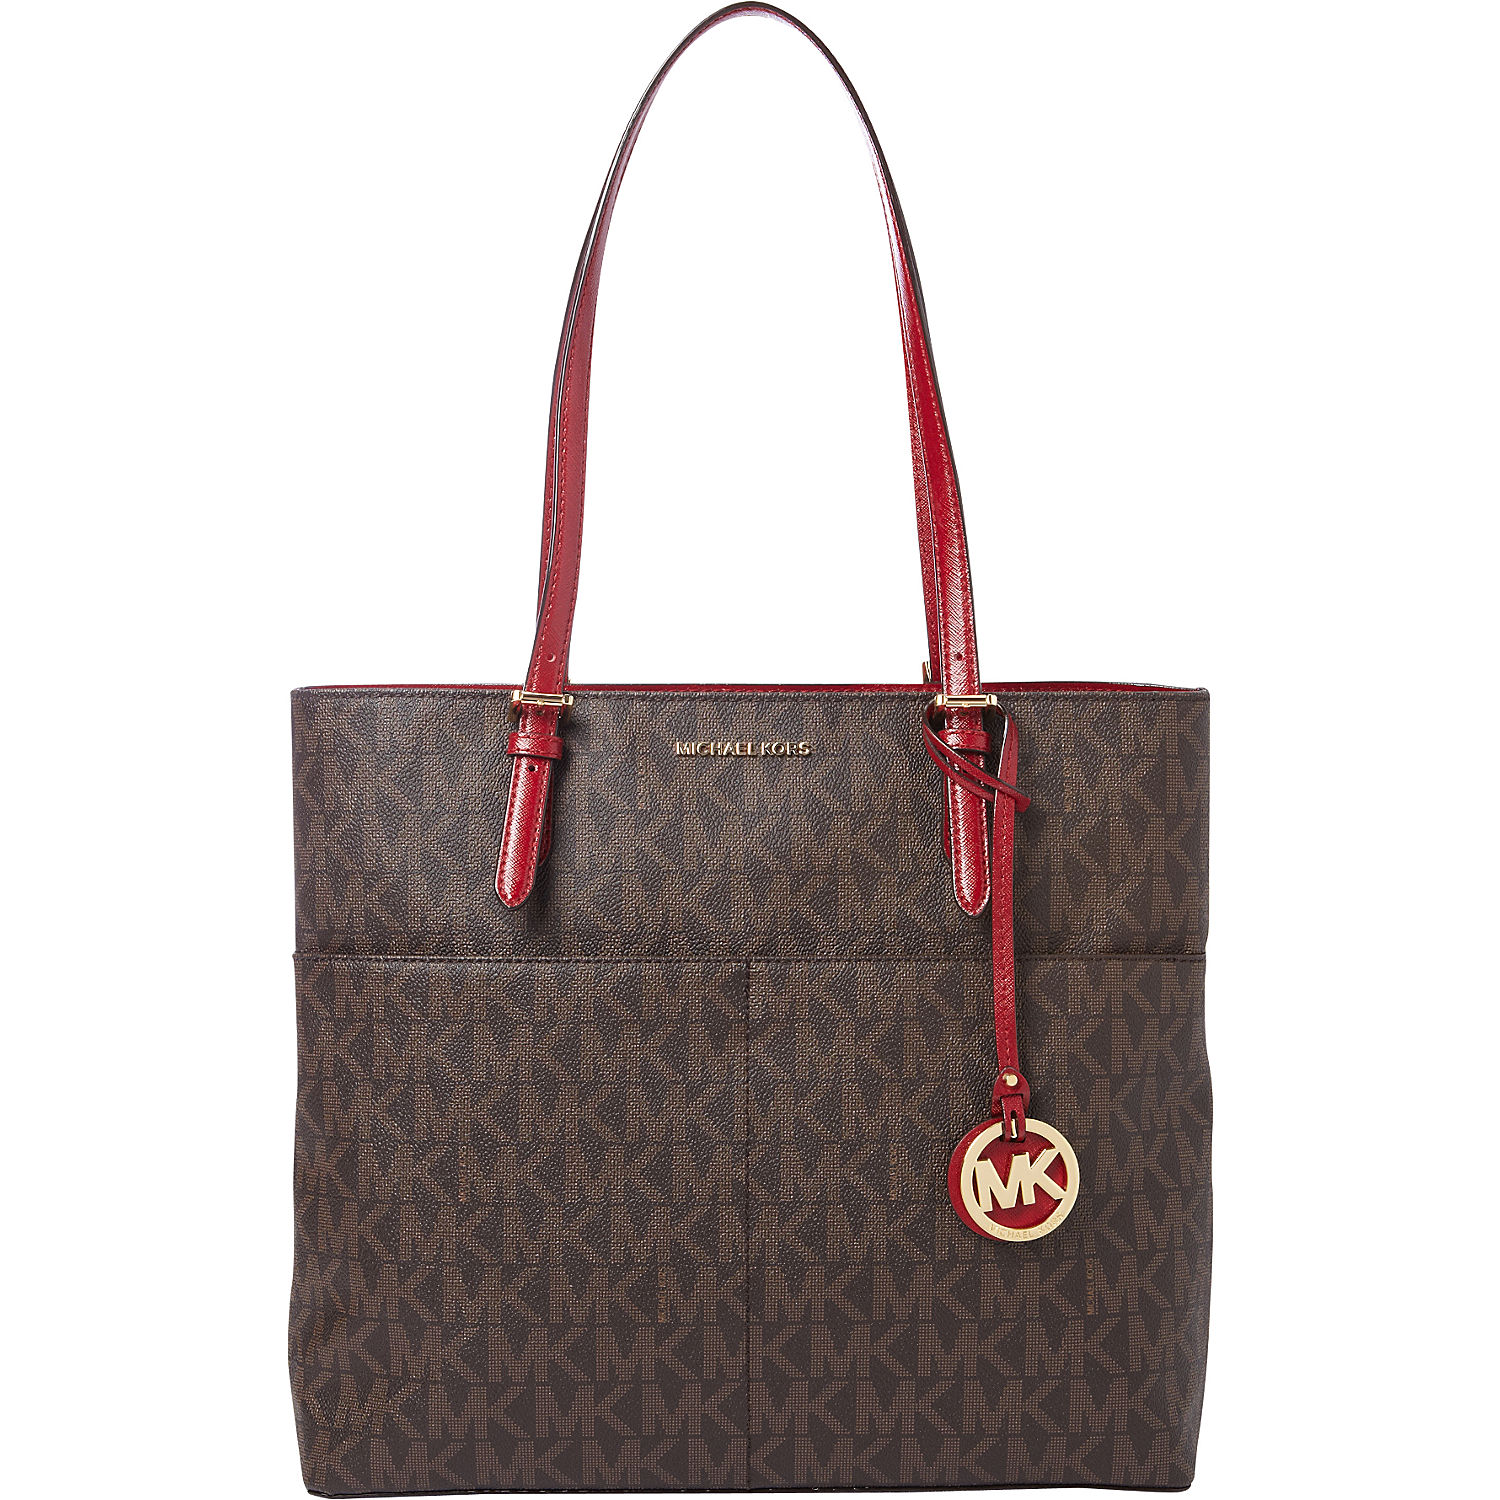 Michael kors red bags prices